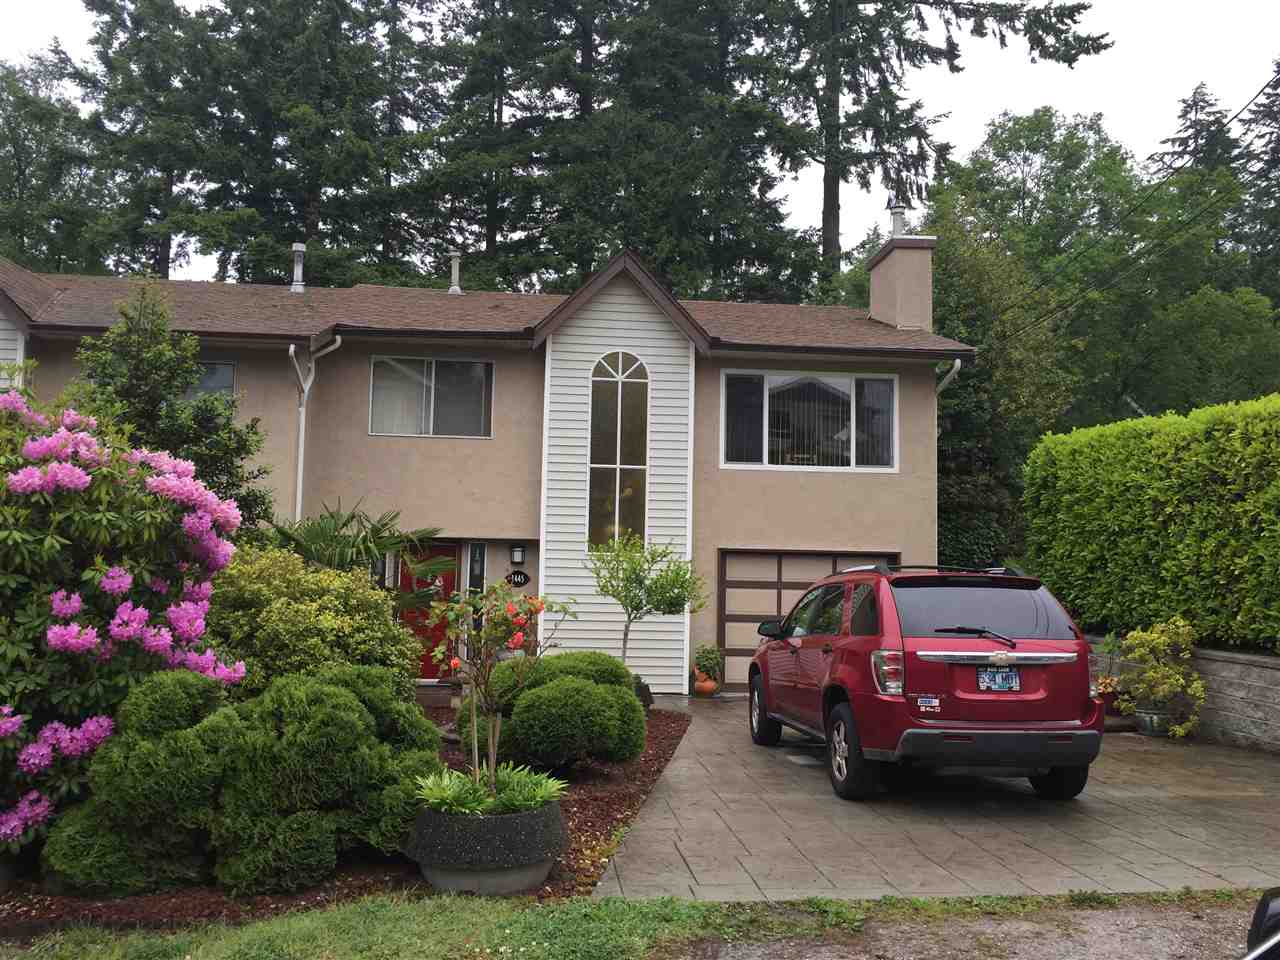 Main Photo: 1445 VIDAL Street: White Rock House 1/2 Duplex for sale (South Surrey White Rock)  : MLS(r) # R2171728